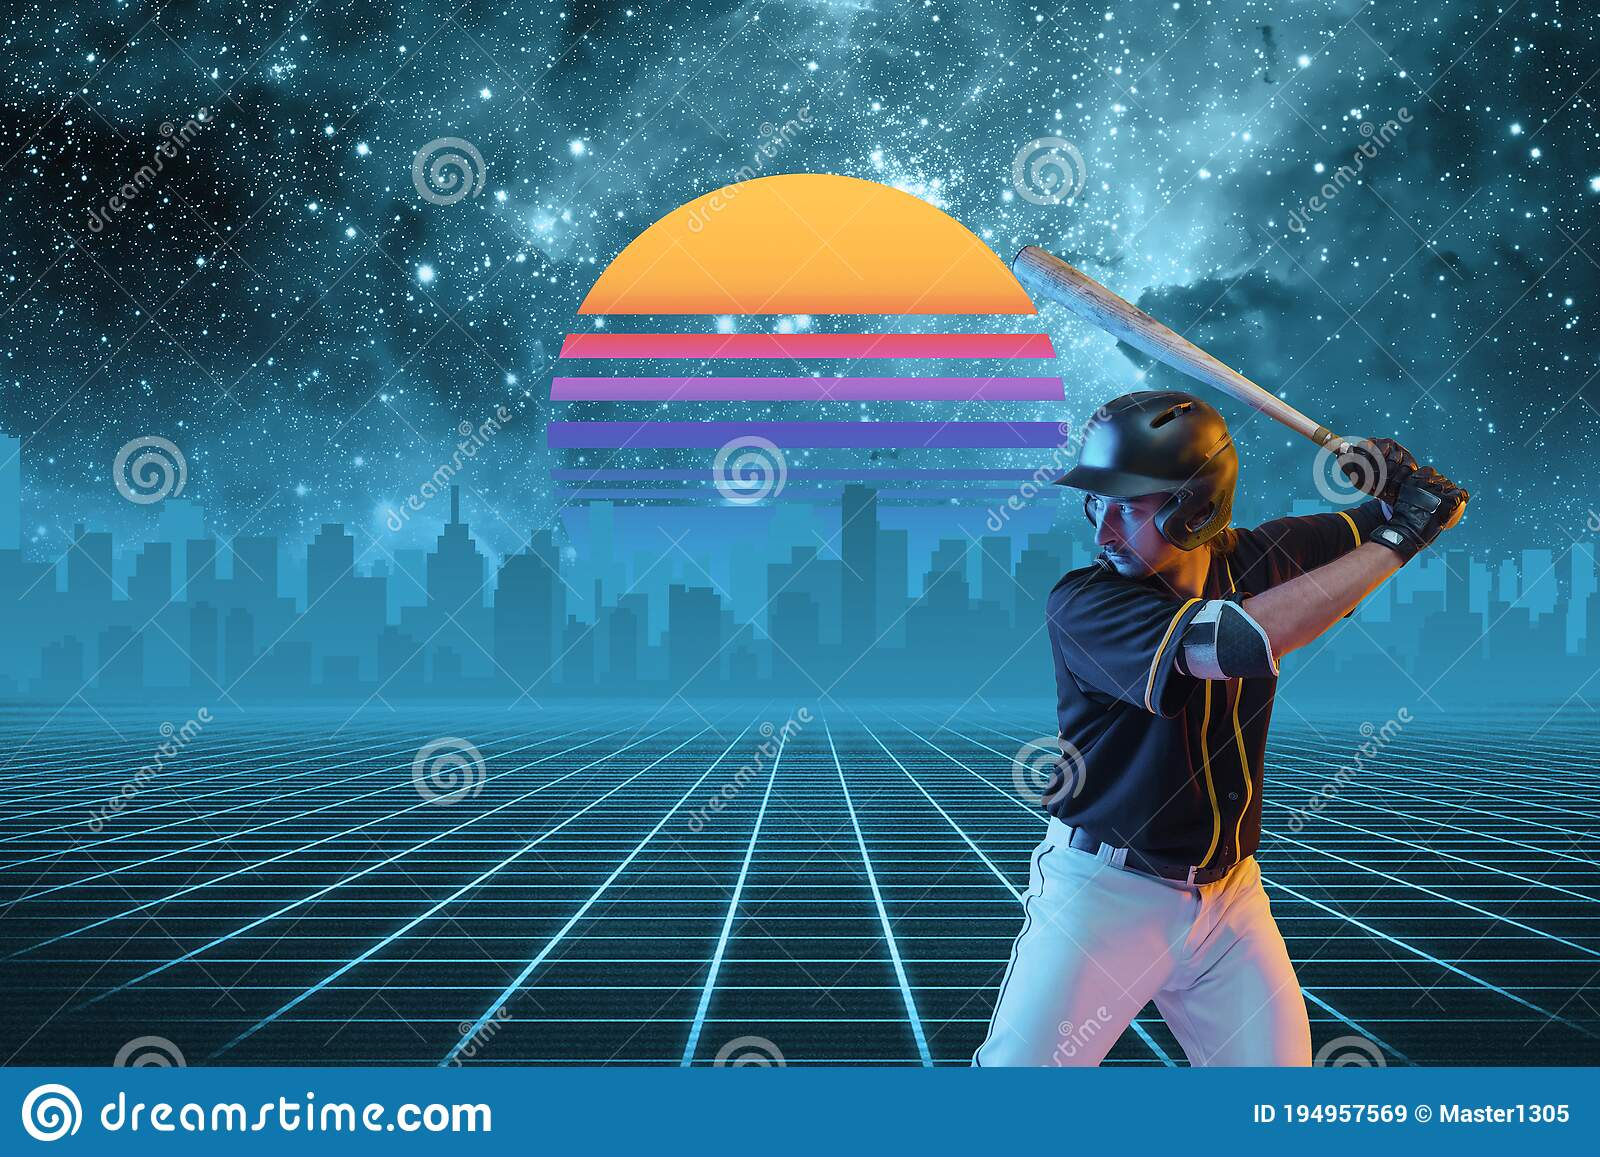 In the future of baseball gaming simulations, you'll be able to insert yourself into the lineup of the Big Red Machine. (VOLODYMYR MELNYK / DREAMSTIME.COM)